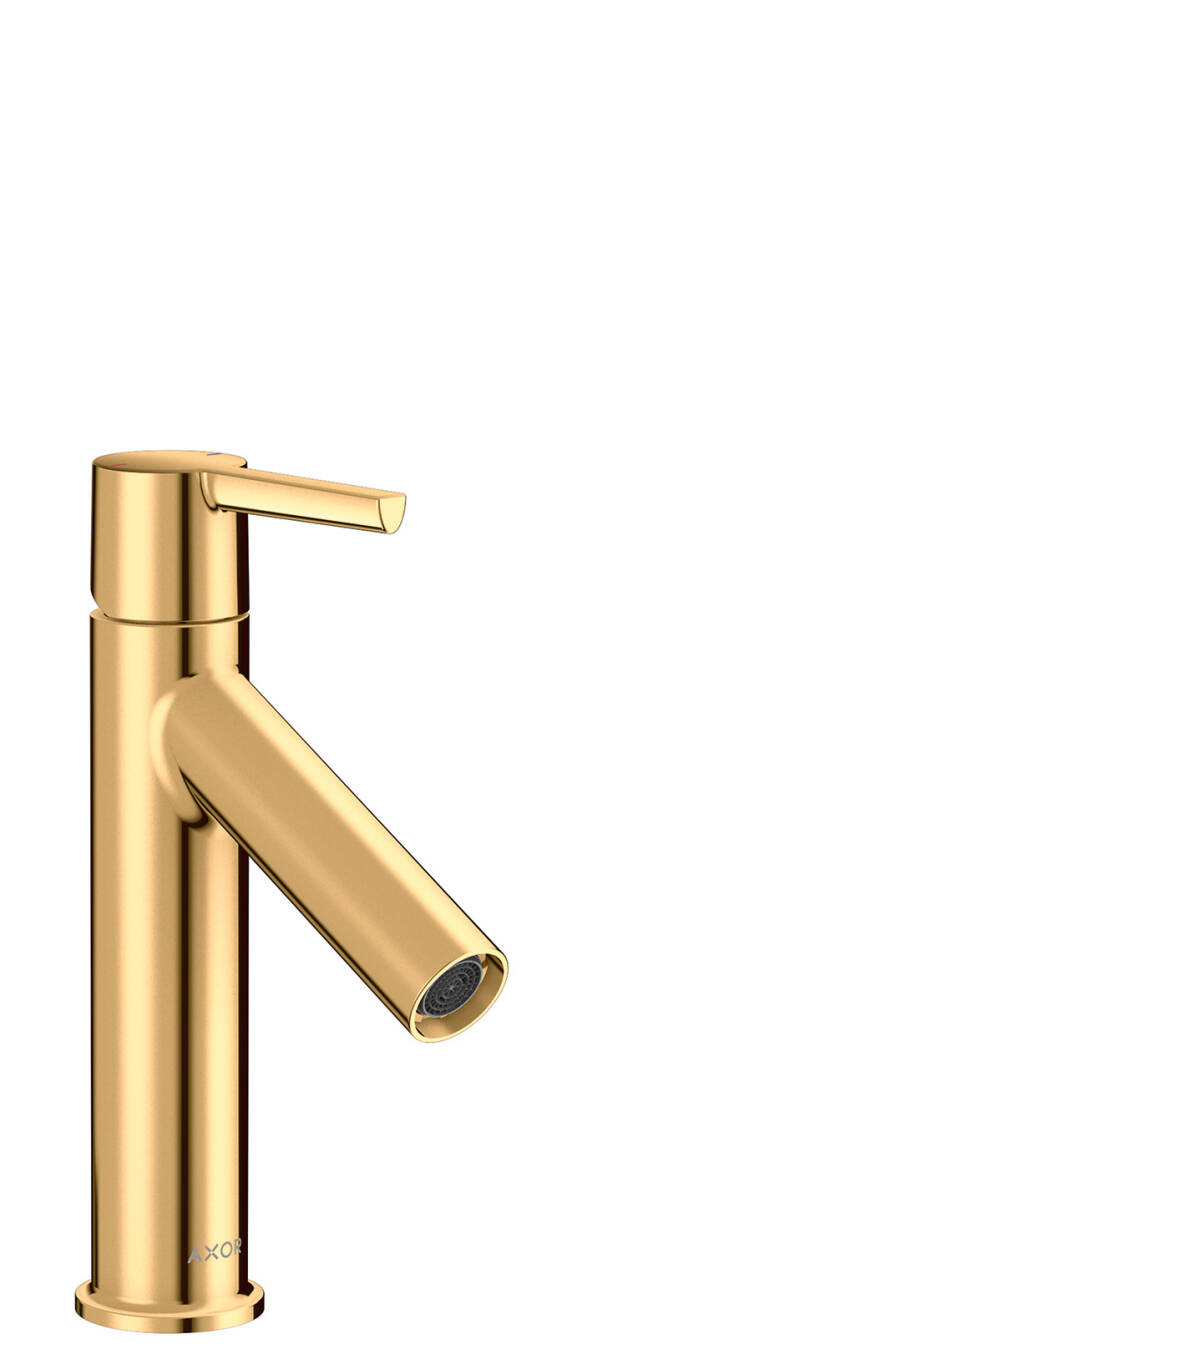 Single lever basin mixer 100 with lever handle and waste set, Polished Brass, 10003930